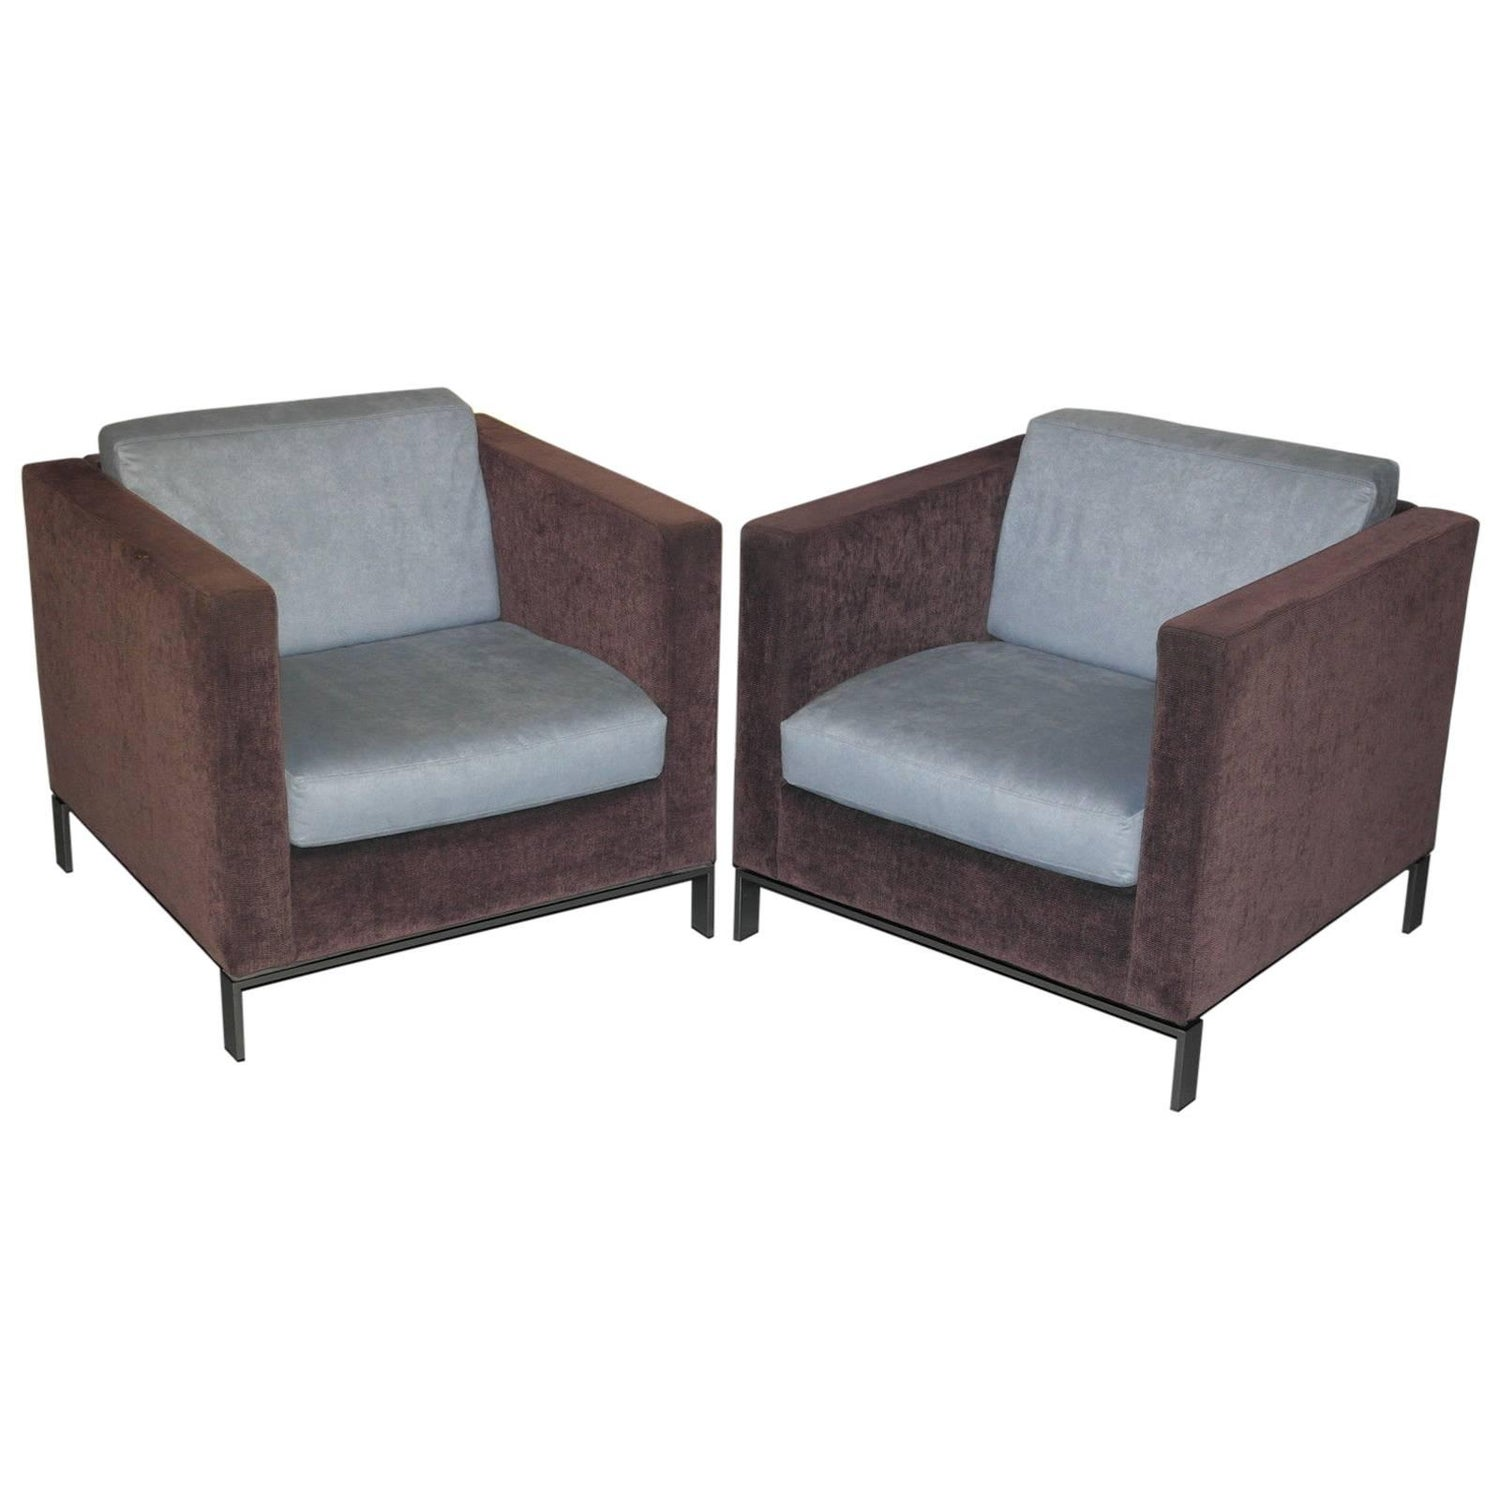 Walter Knoll Furniture - 44 For Sale at 1stdibs